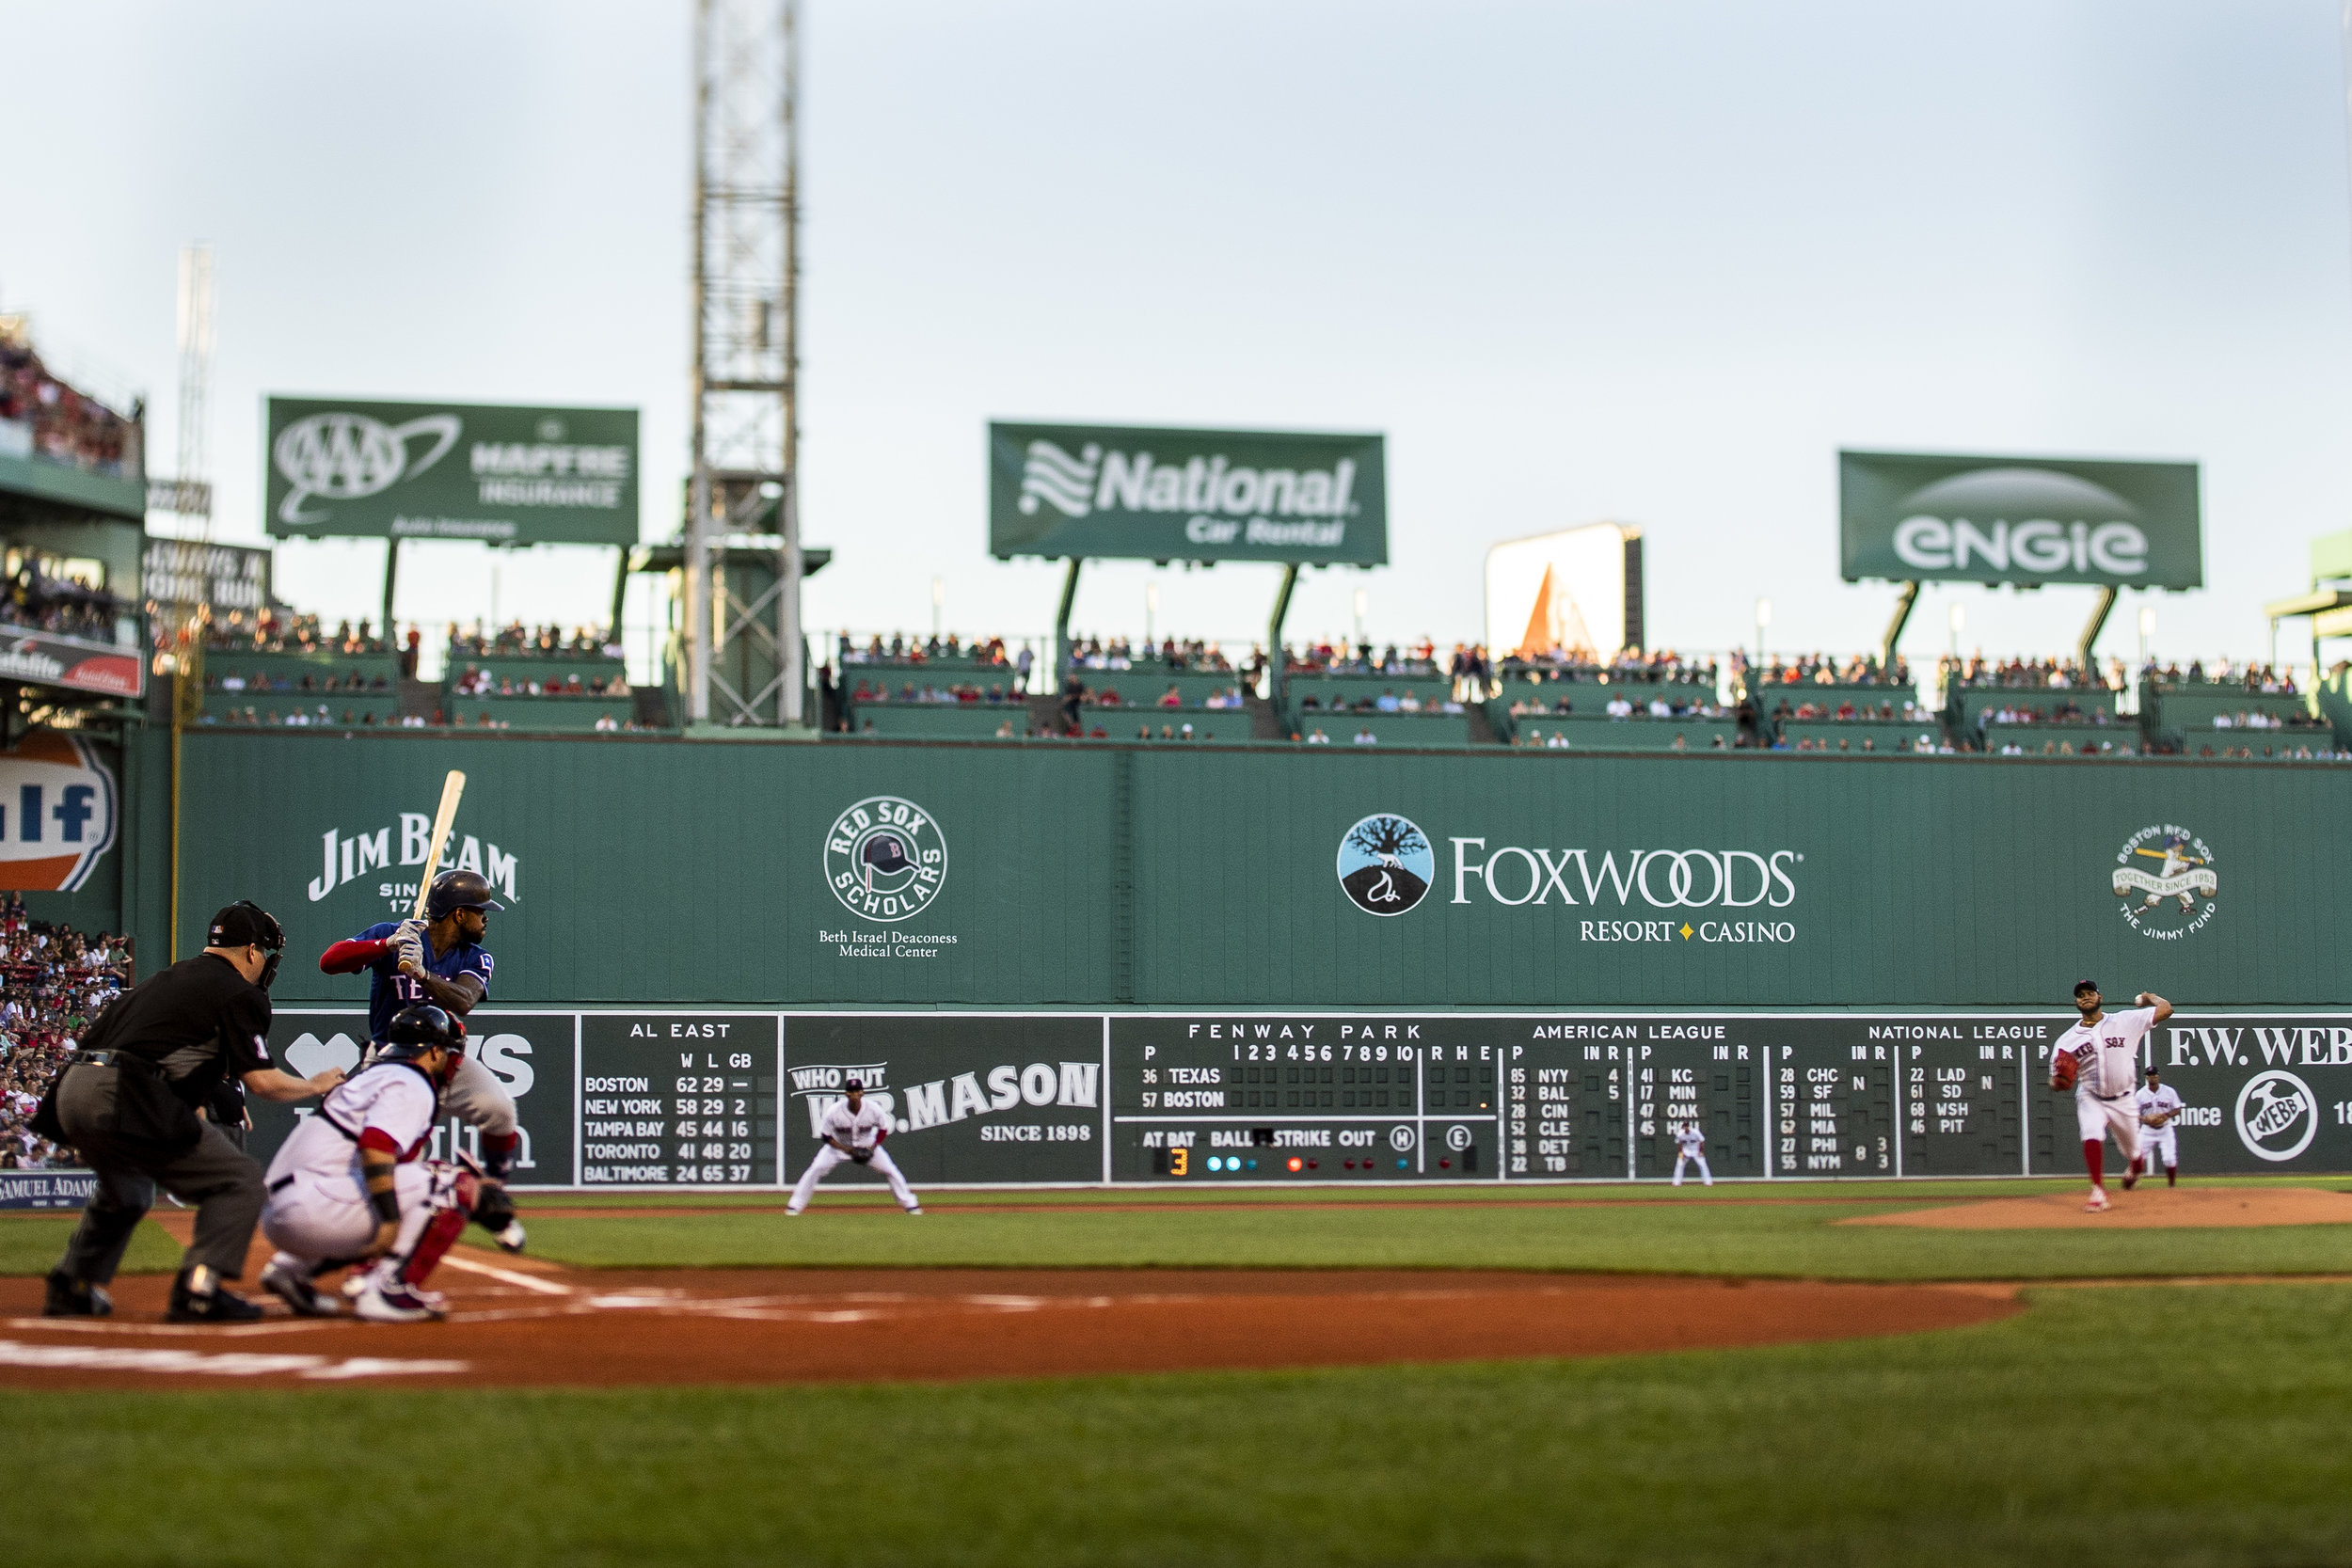 July 8, 2018, Boston, MA: Boston Red Sox pitcher Eduardo Rodriguez delivers a pitch as the Boston Red Sox face the Texas Rangers Fenway Park in Boston, Massachusetts on Monday, July 9, 2018. (Photo by Matthew Thomas/Boston Red Sox)